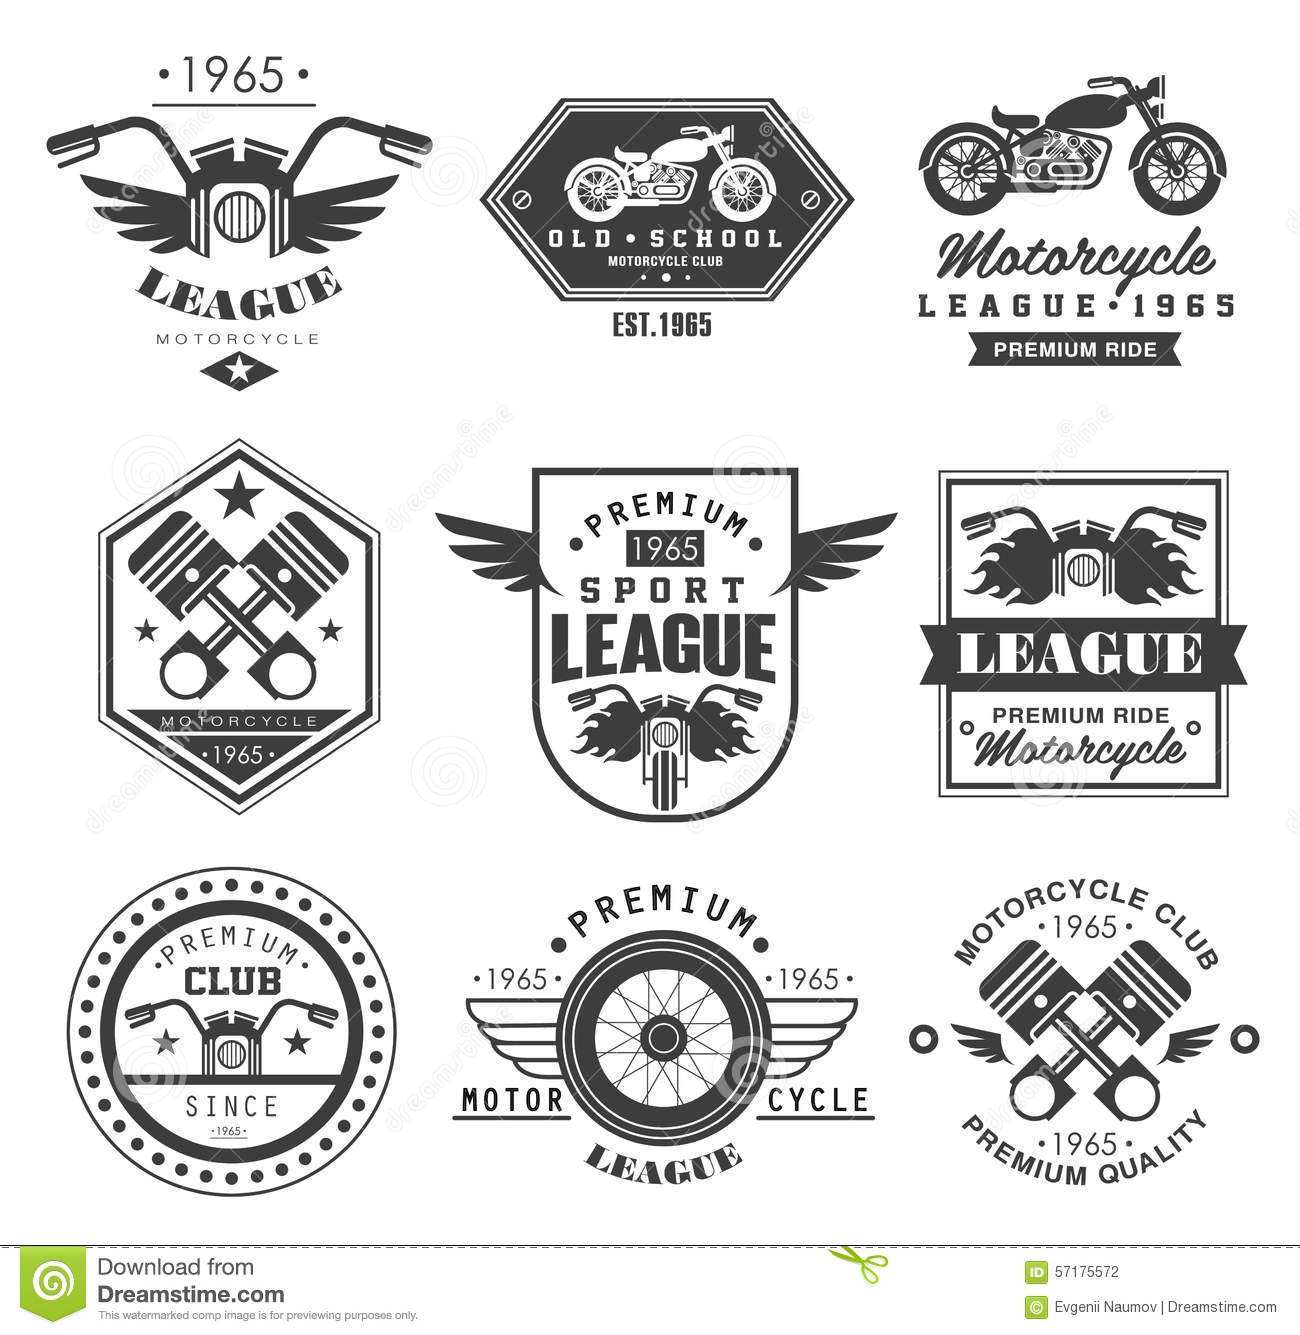 320963736464 additionally Set Auto Service Labels Vintage Style 483917596 besides Car Logo also Car racing logo likewise All Car Logo. on auto car badges emblems